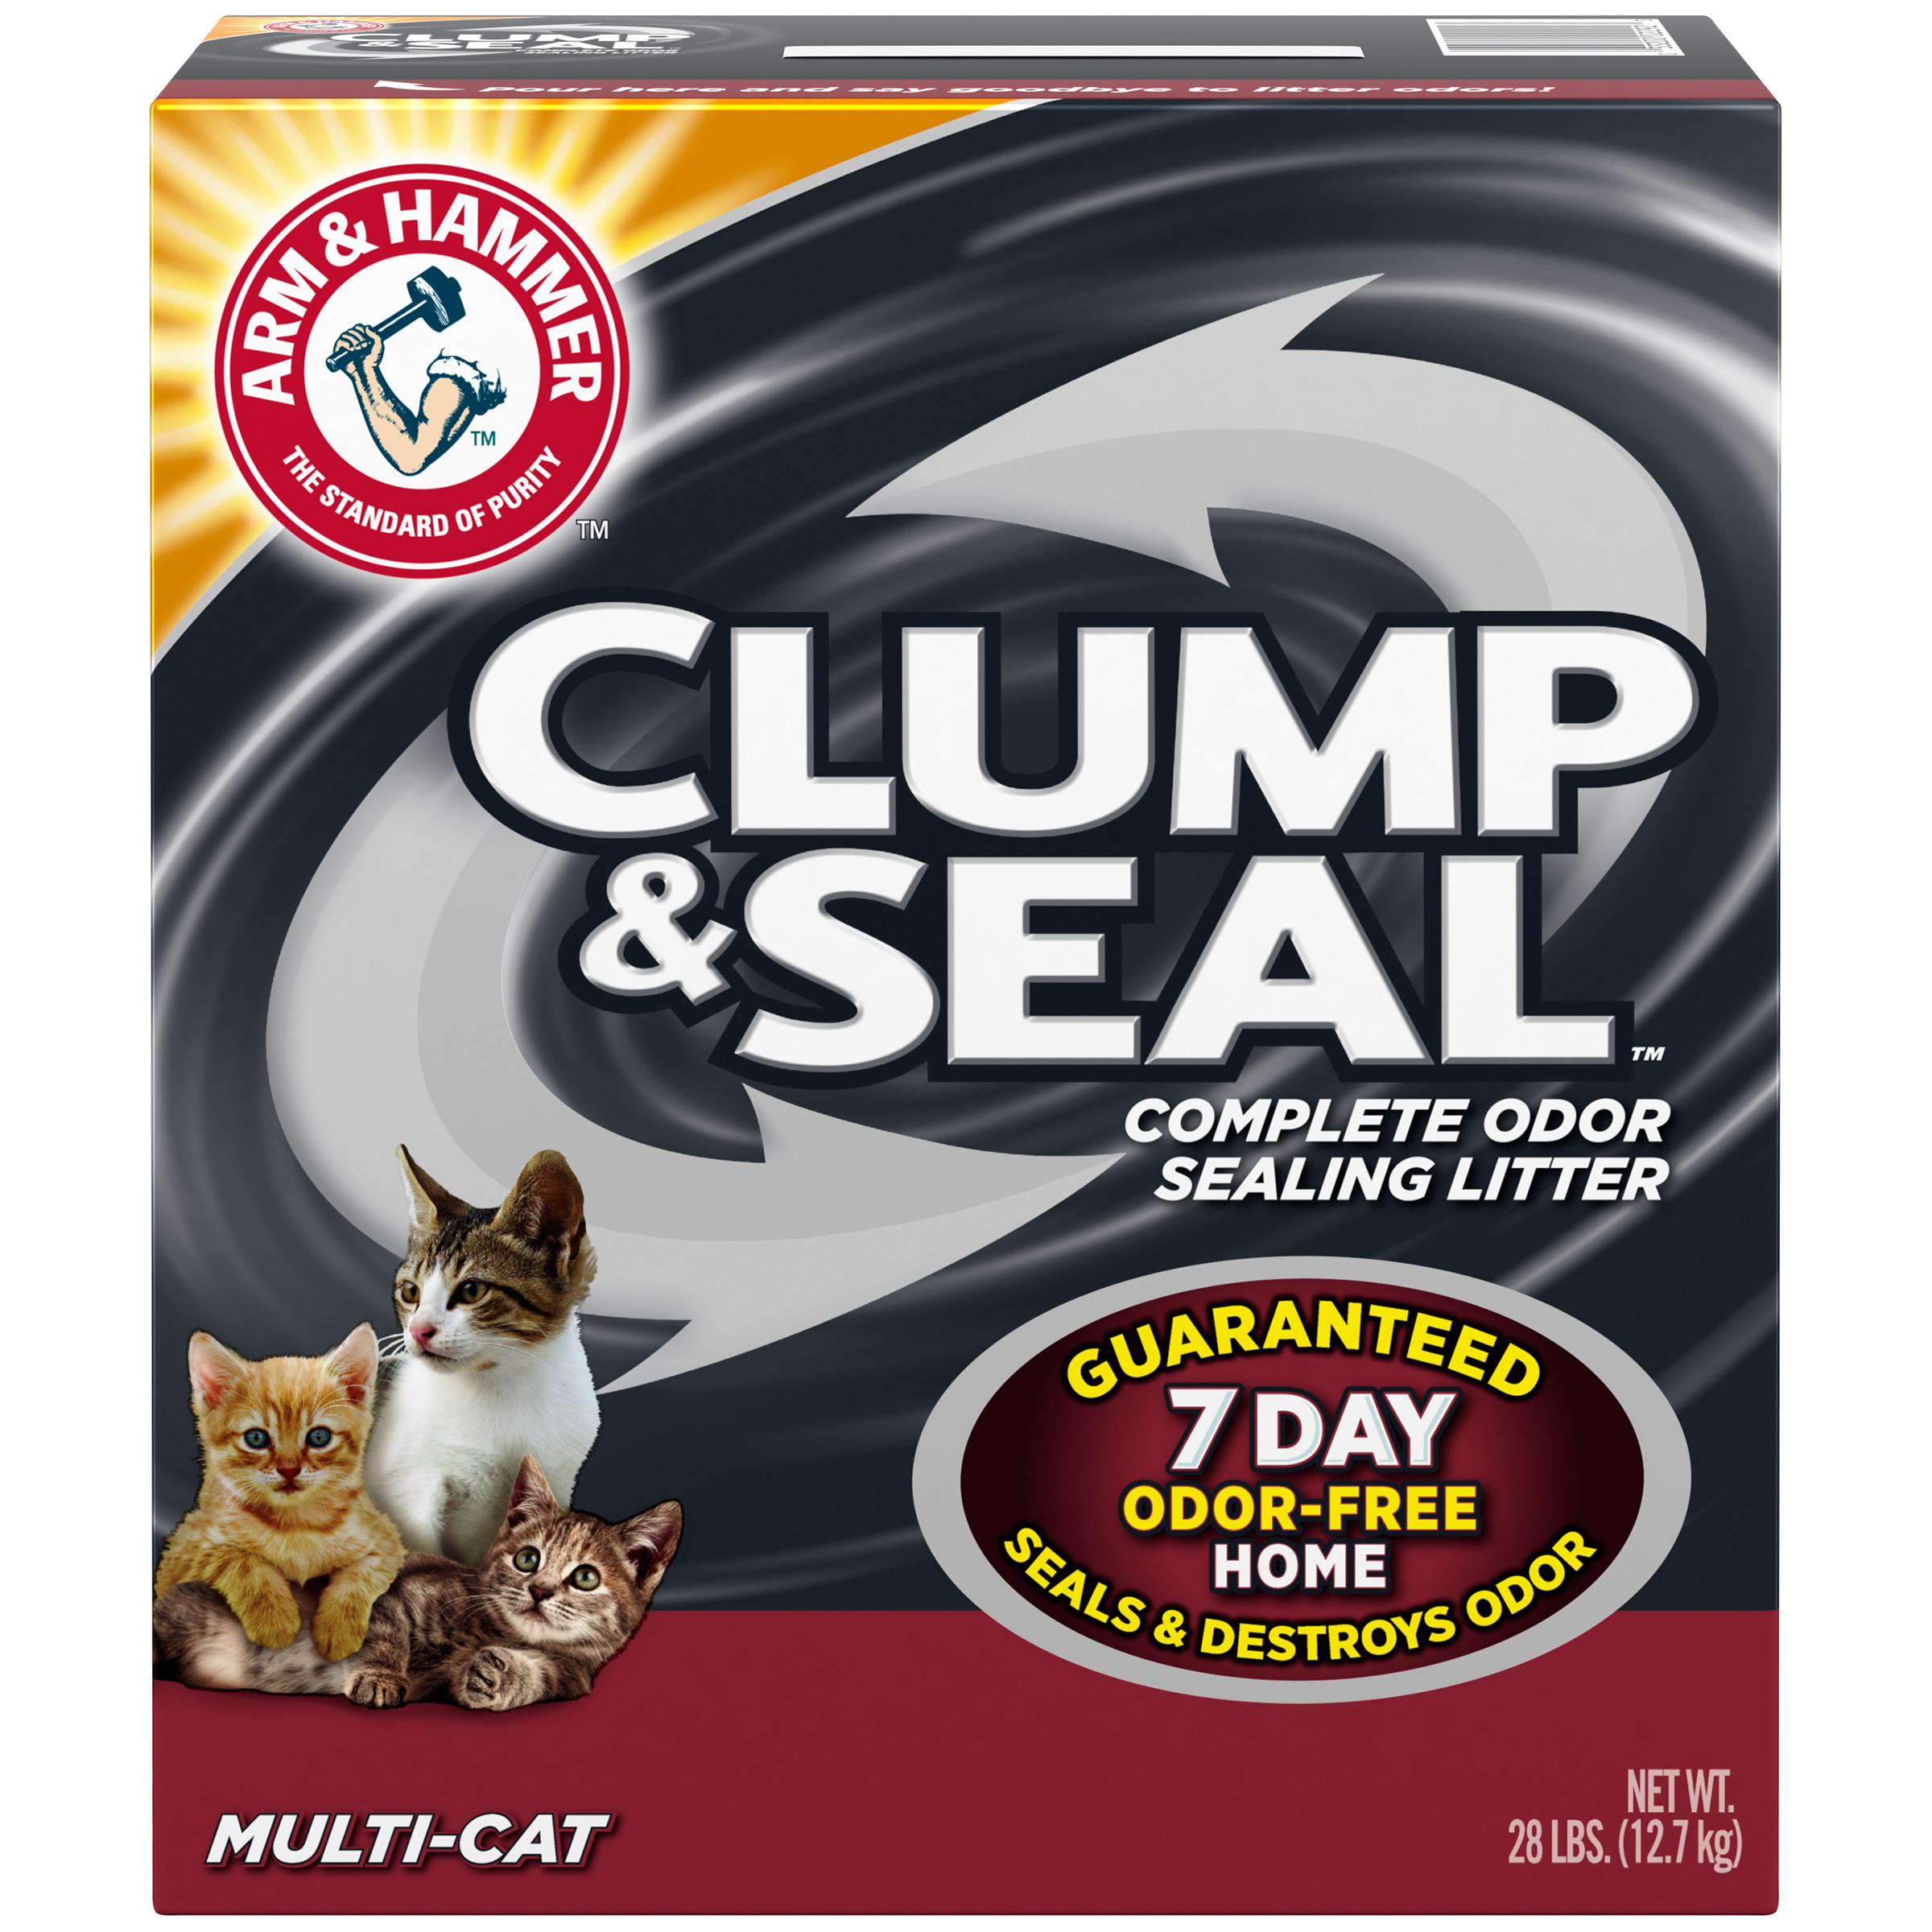 Arm & Hammer Clump & Seal Litter, Multi-Cat 28lb